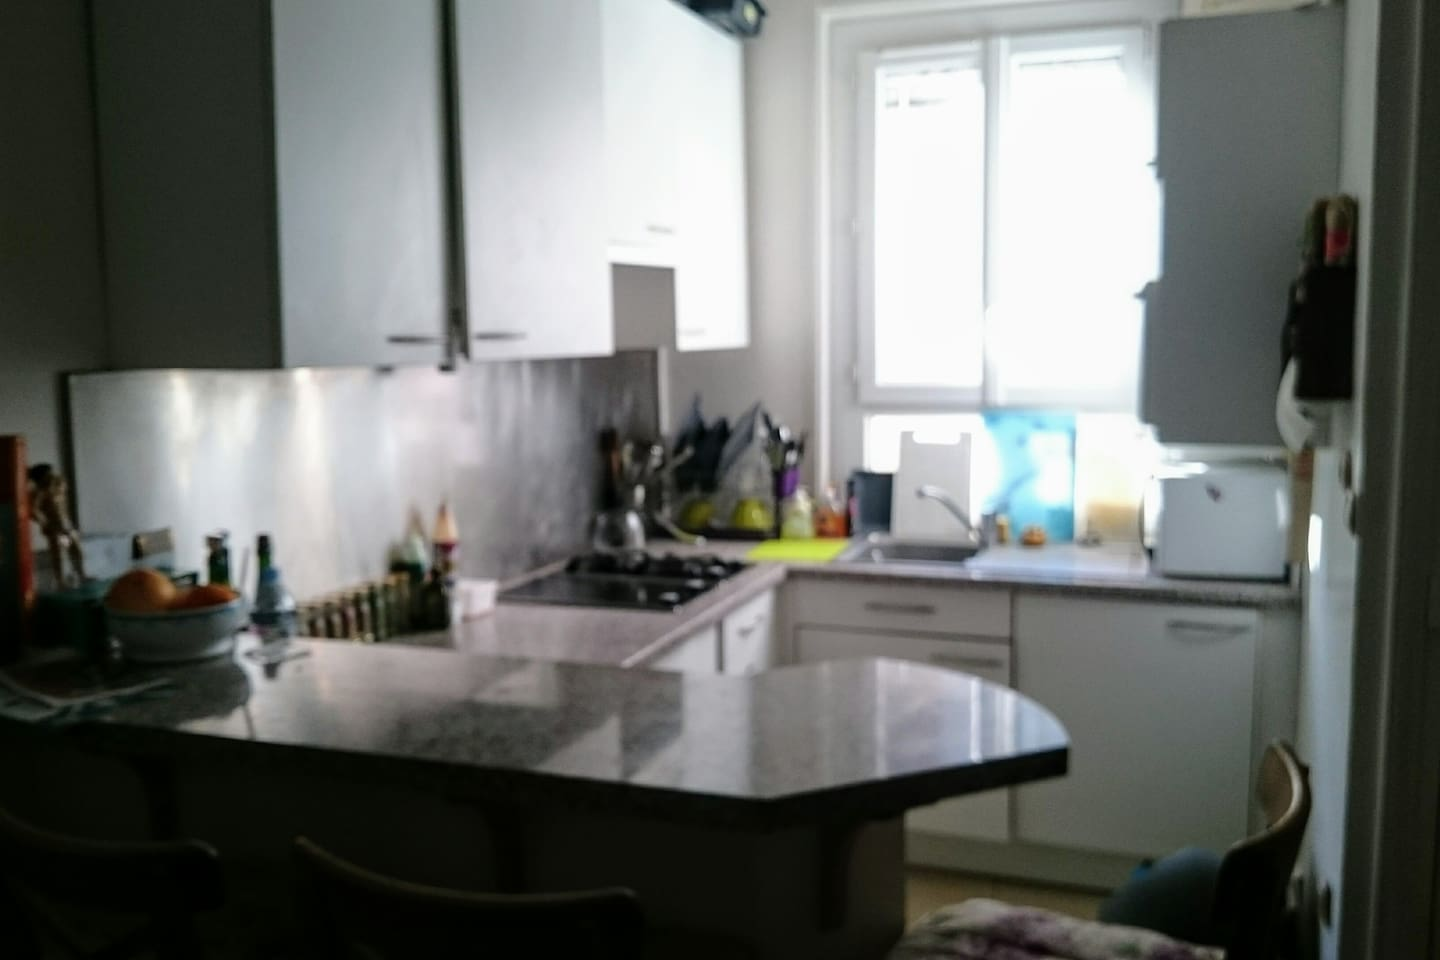 Kitchen (fully equiped, with plenty of food)